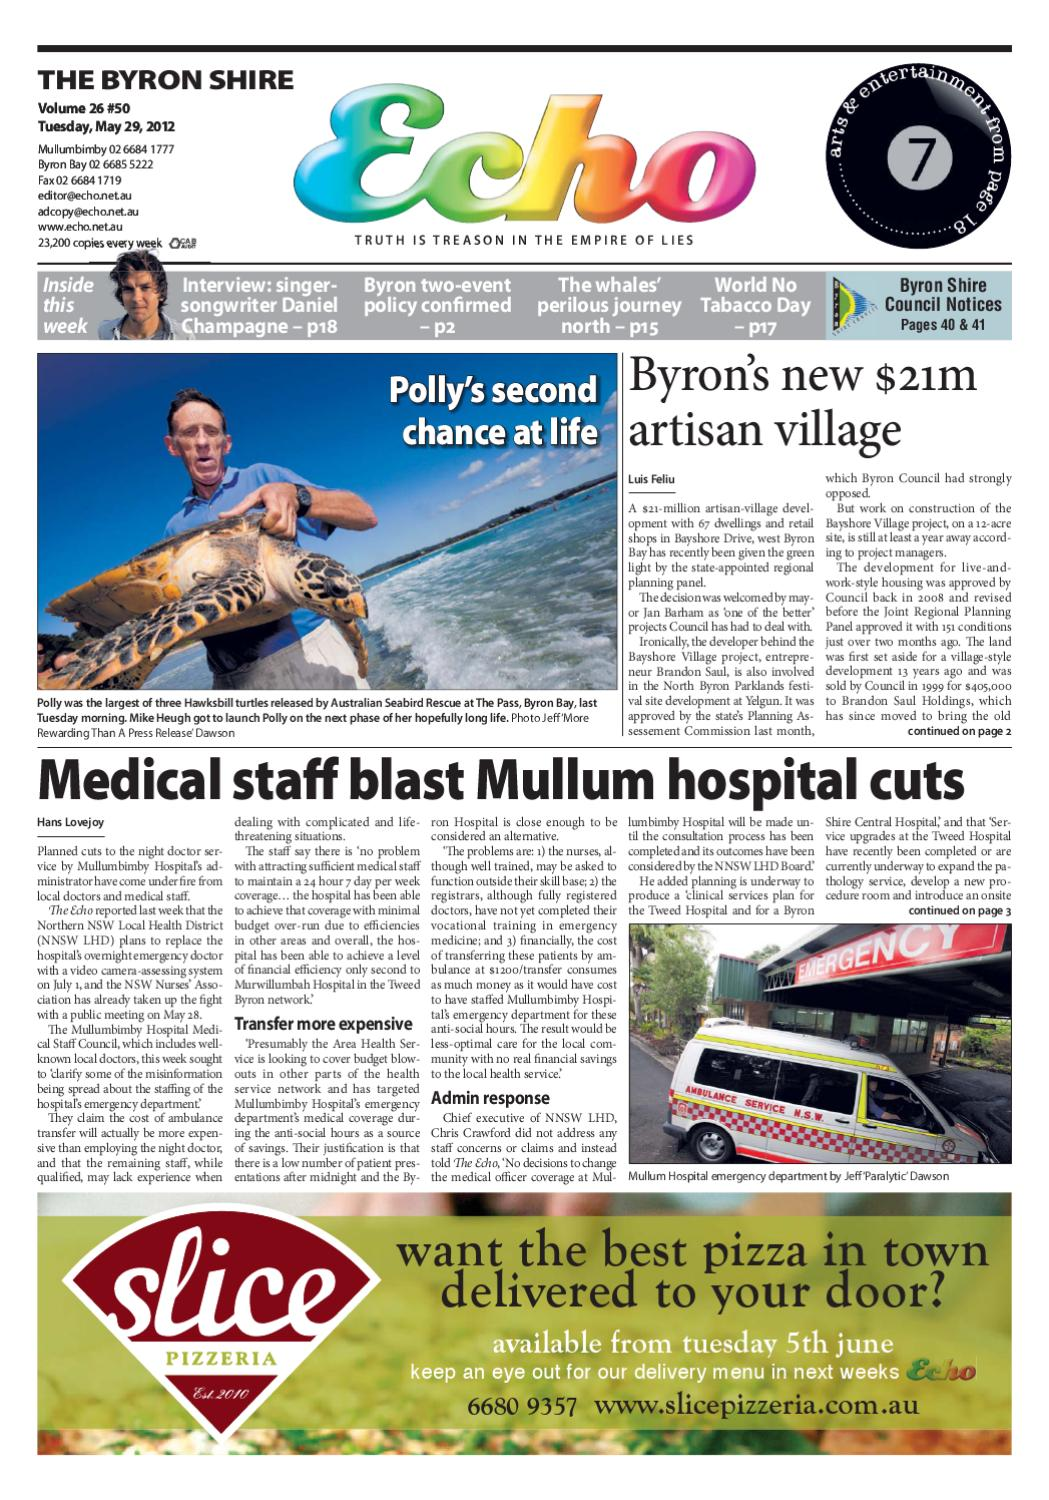 Cabinet Medical Persan Byron Shire Echo Issue 26 50 29 05 2012